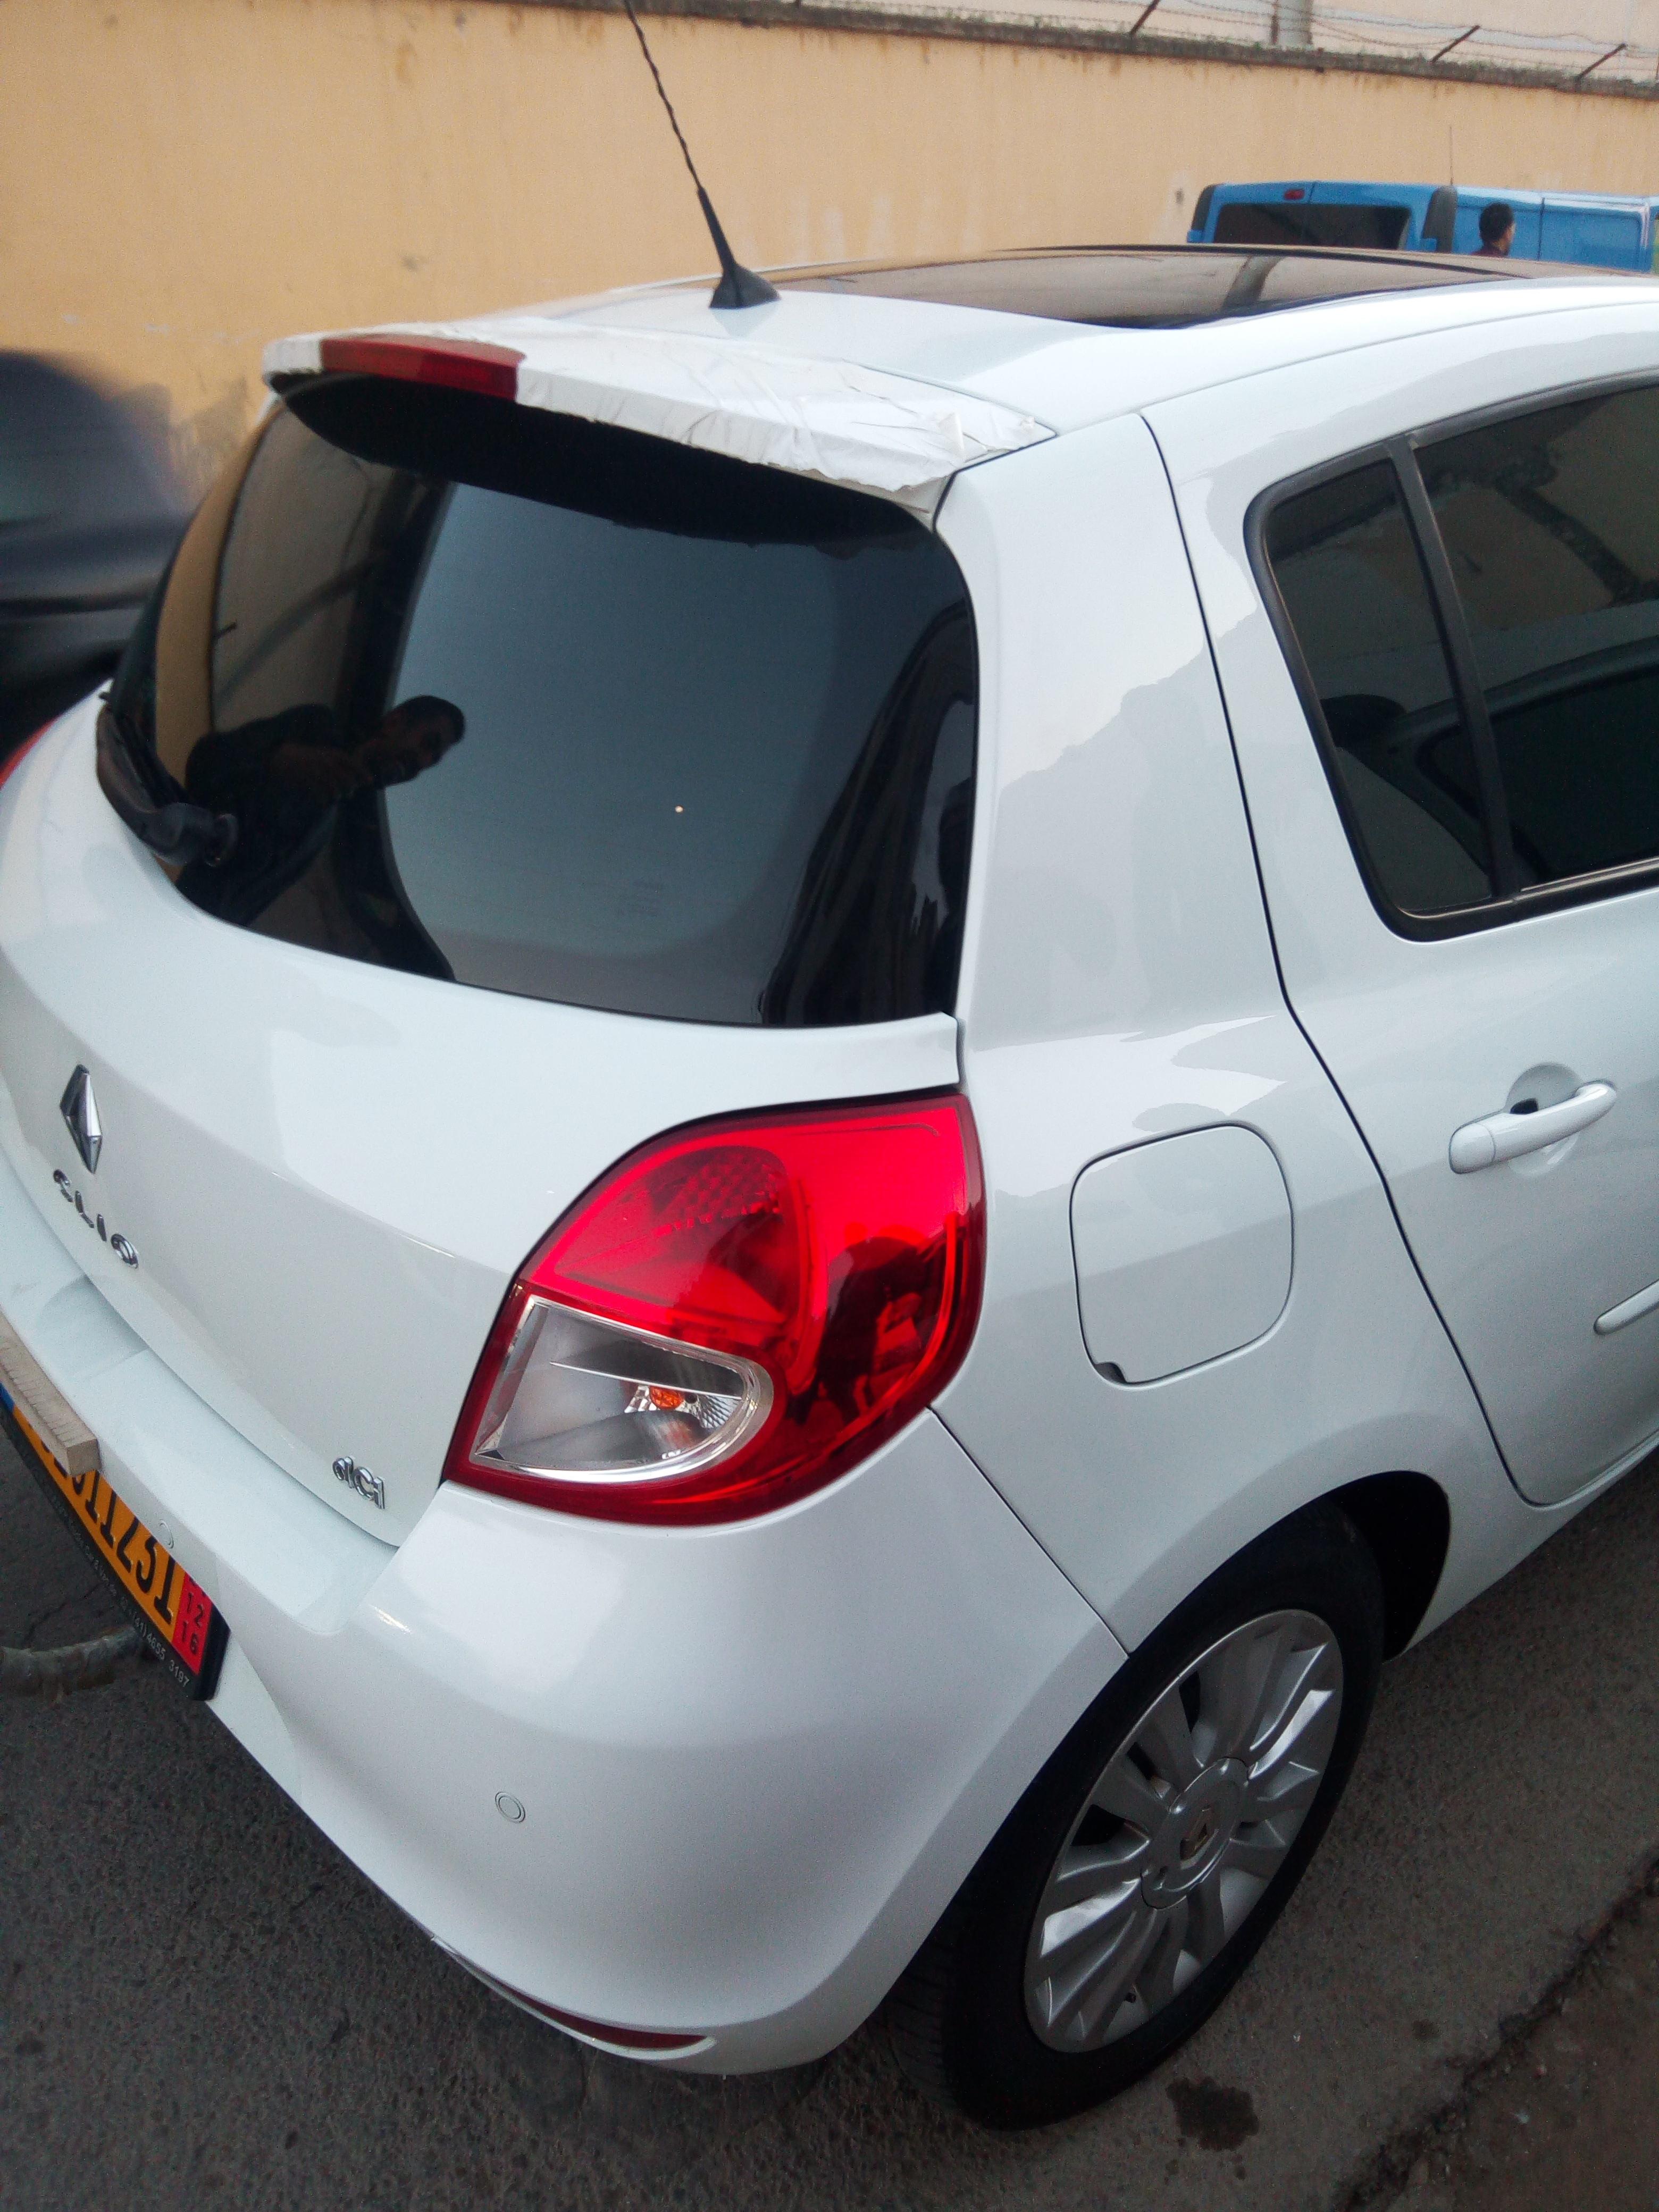 vente clio 3 dci ouedkniss